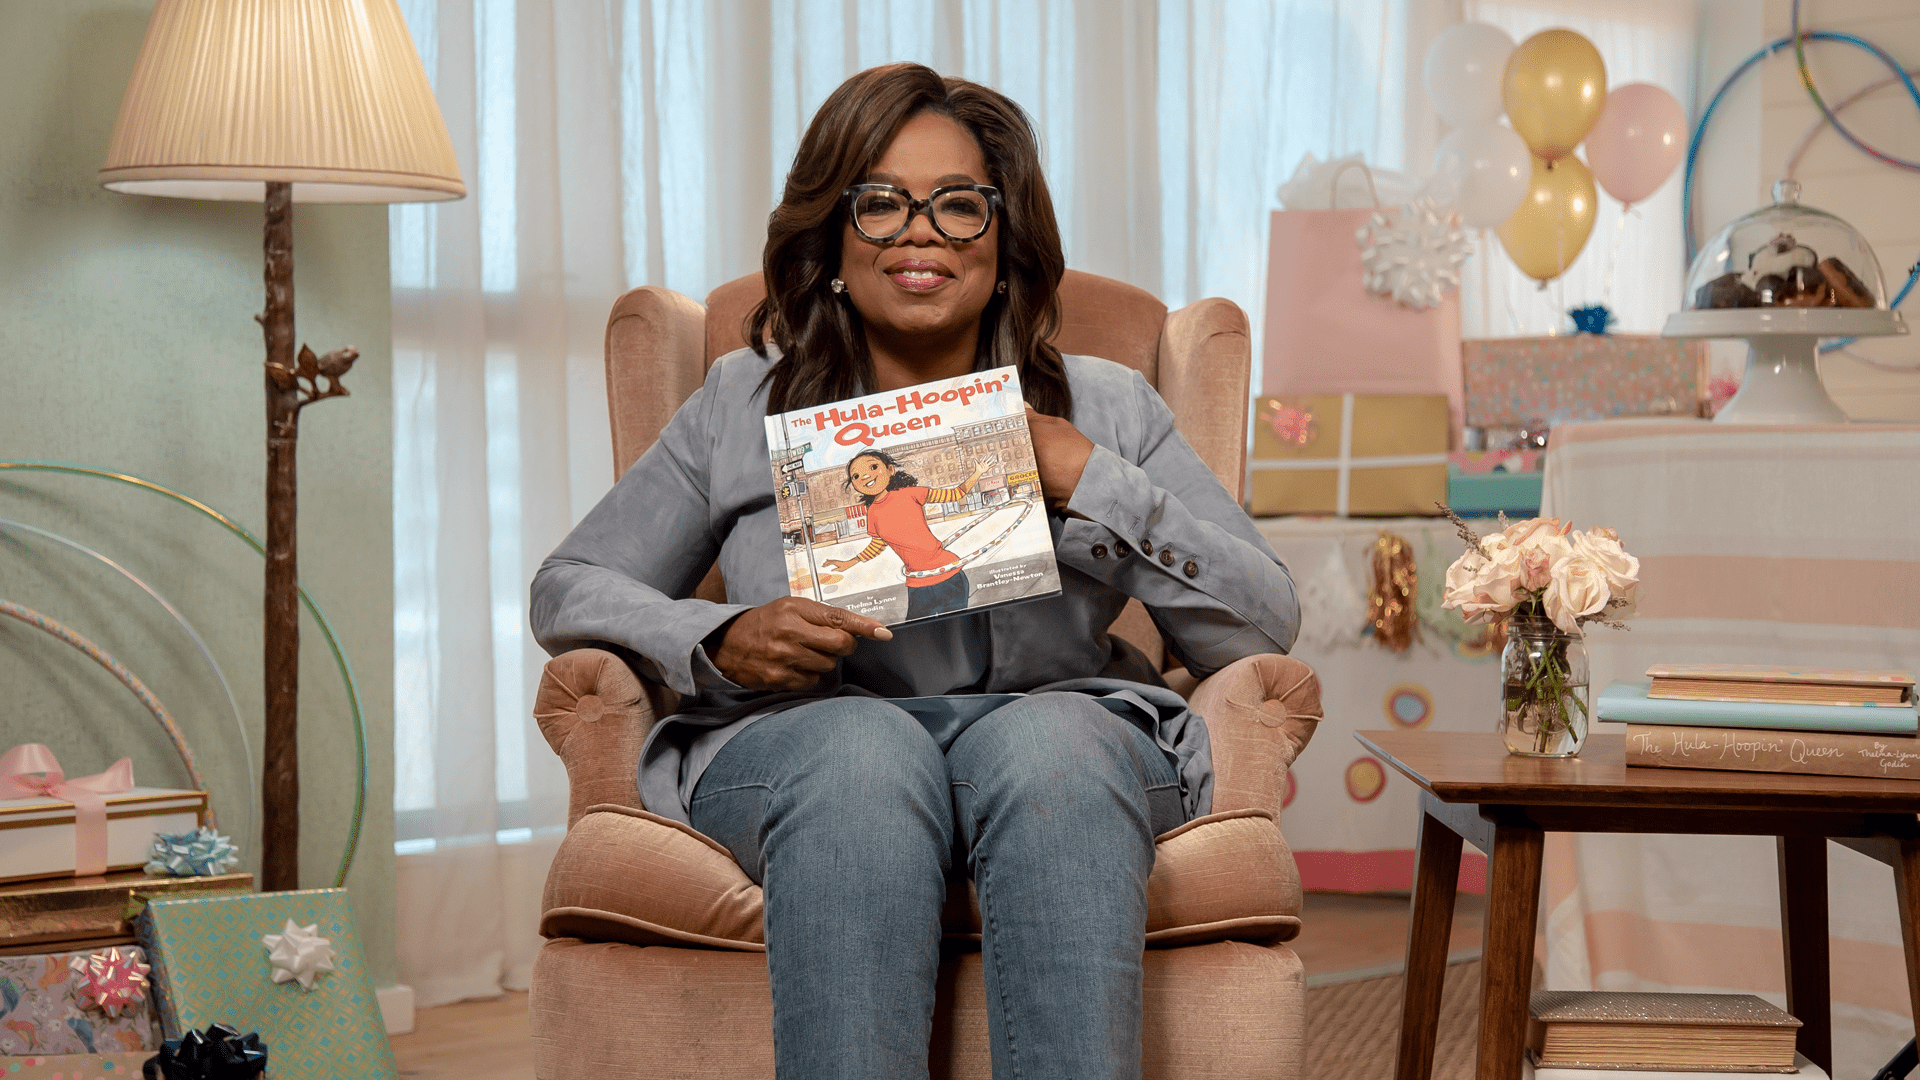 Oprah Winfrey reads The Hula-Hoopin' Queen for SAG-AFTRA Foundation's children's literacy program Storyline Online®